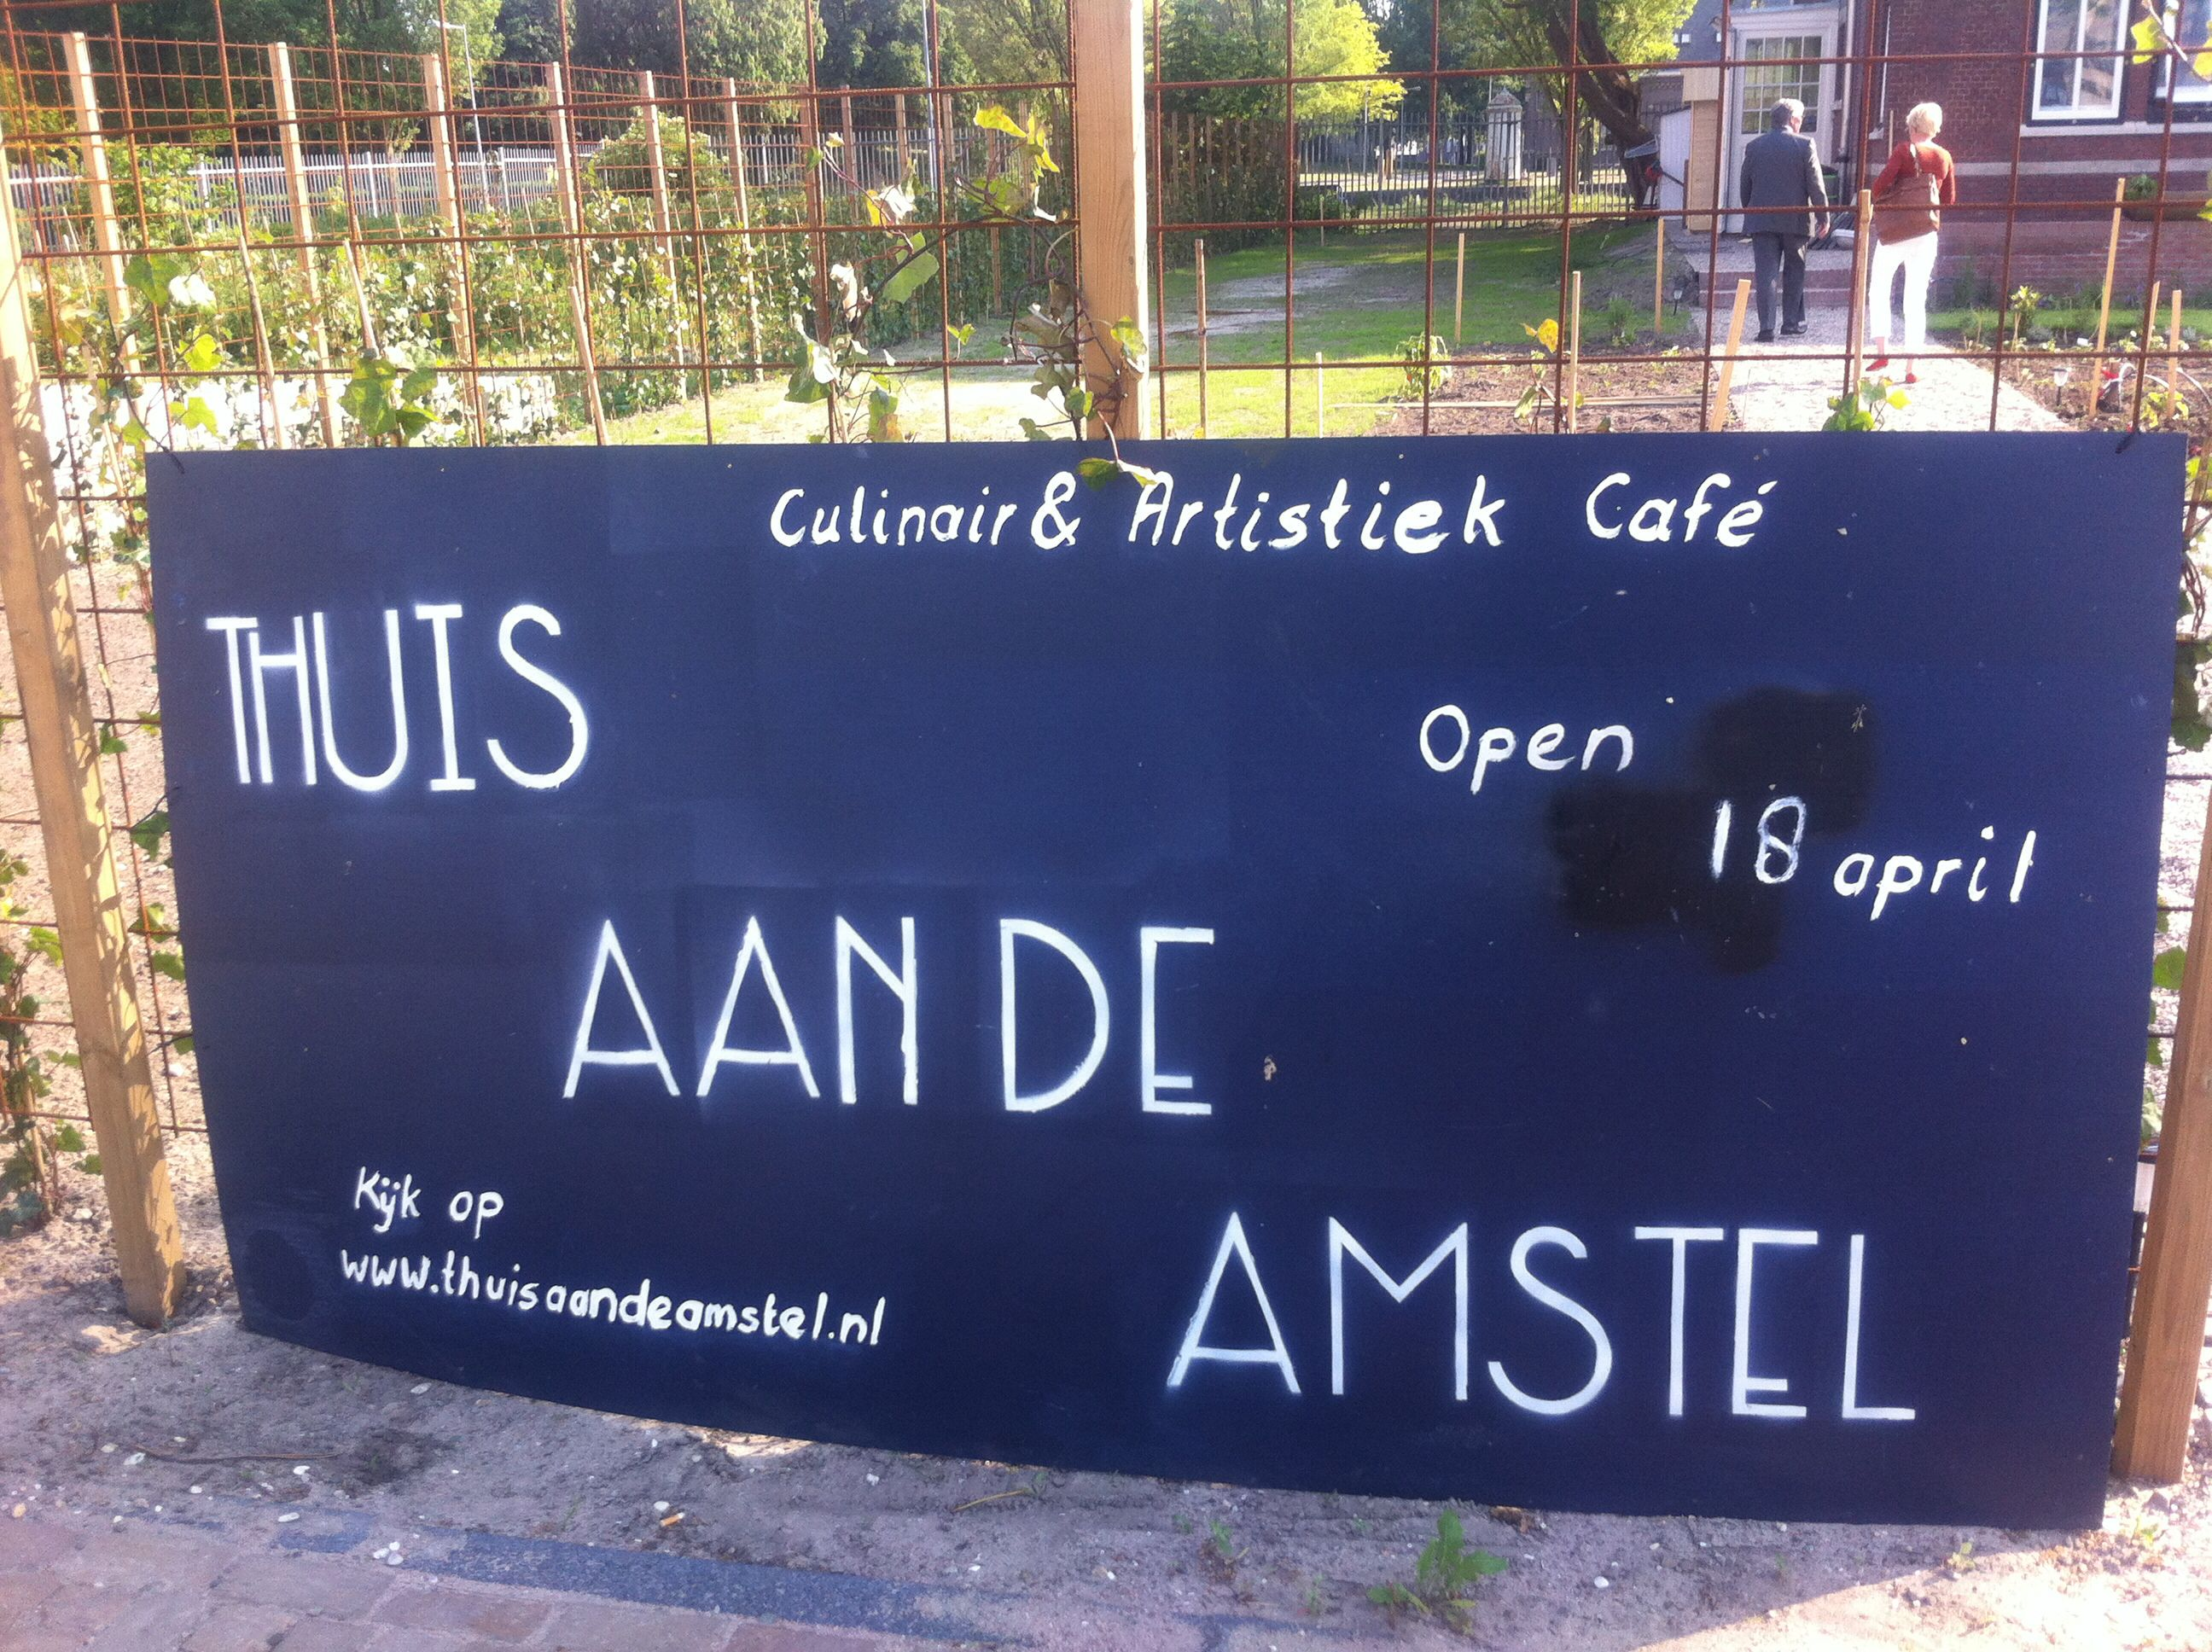 Best cafe in amsterdam cool cafe highway signs cafe